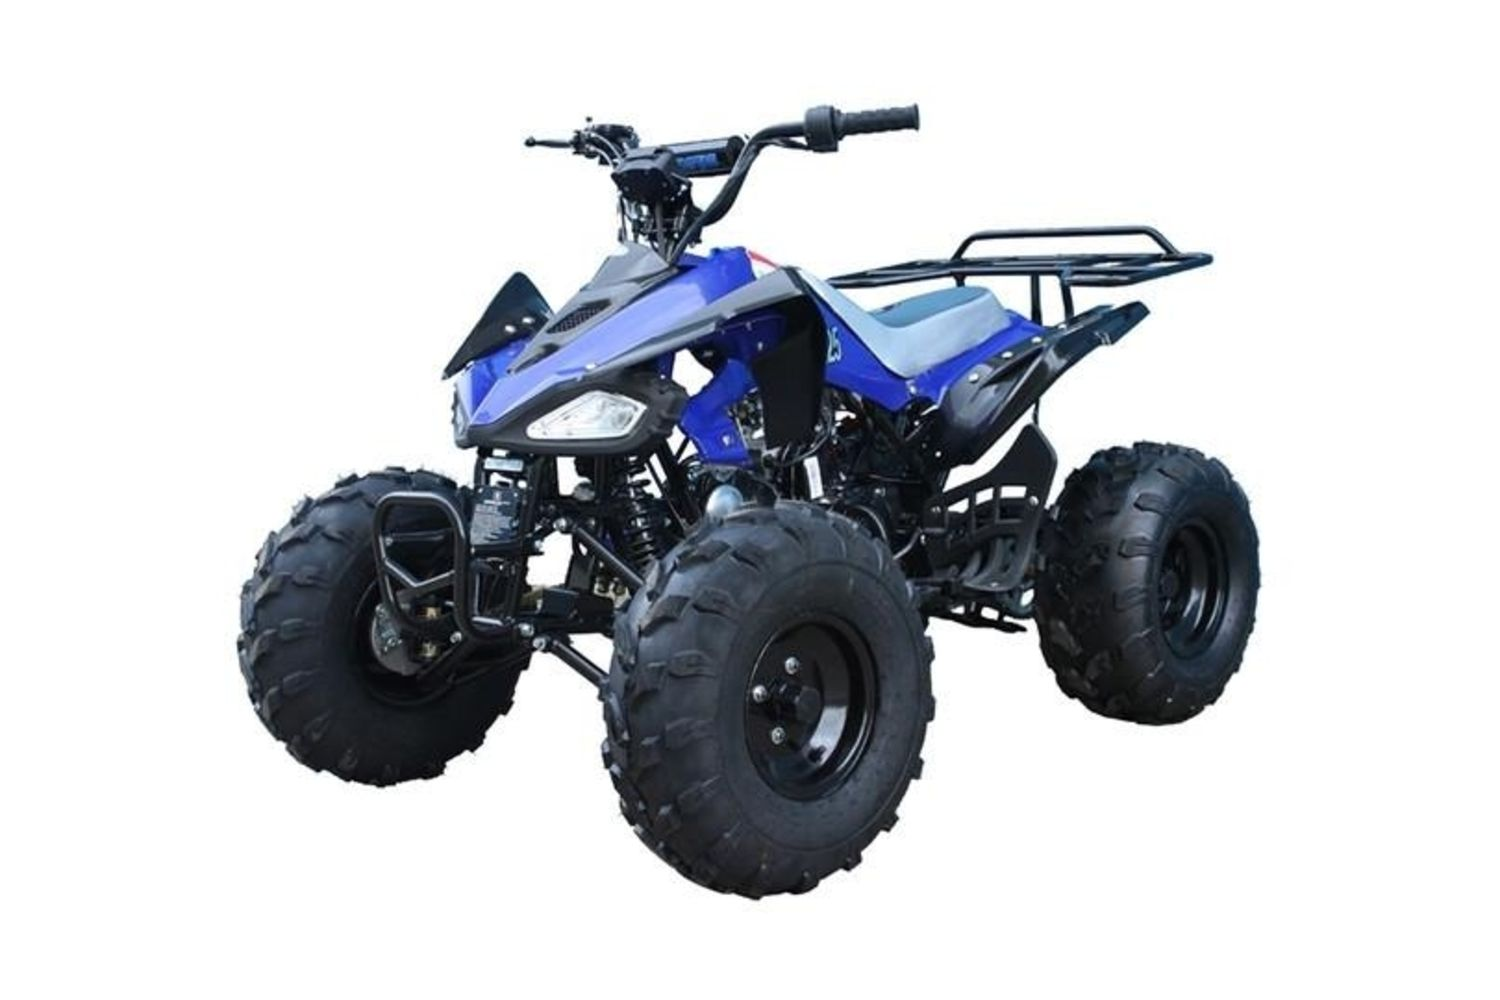 Brand New Quad Bikes, Dirt Bikes, Tools & Generators: 49cc Mini Quads & Dirt Bikes, Petrol Generators and Professional Tool Cabinets with Tools